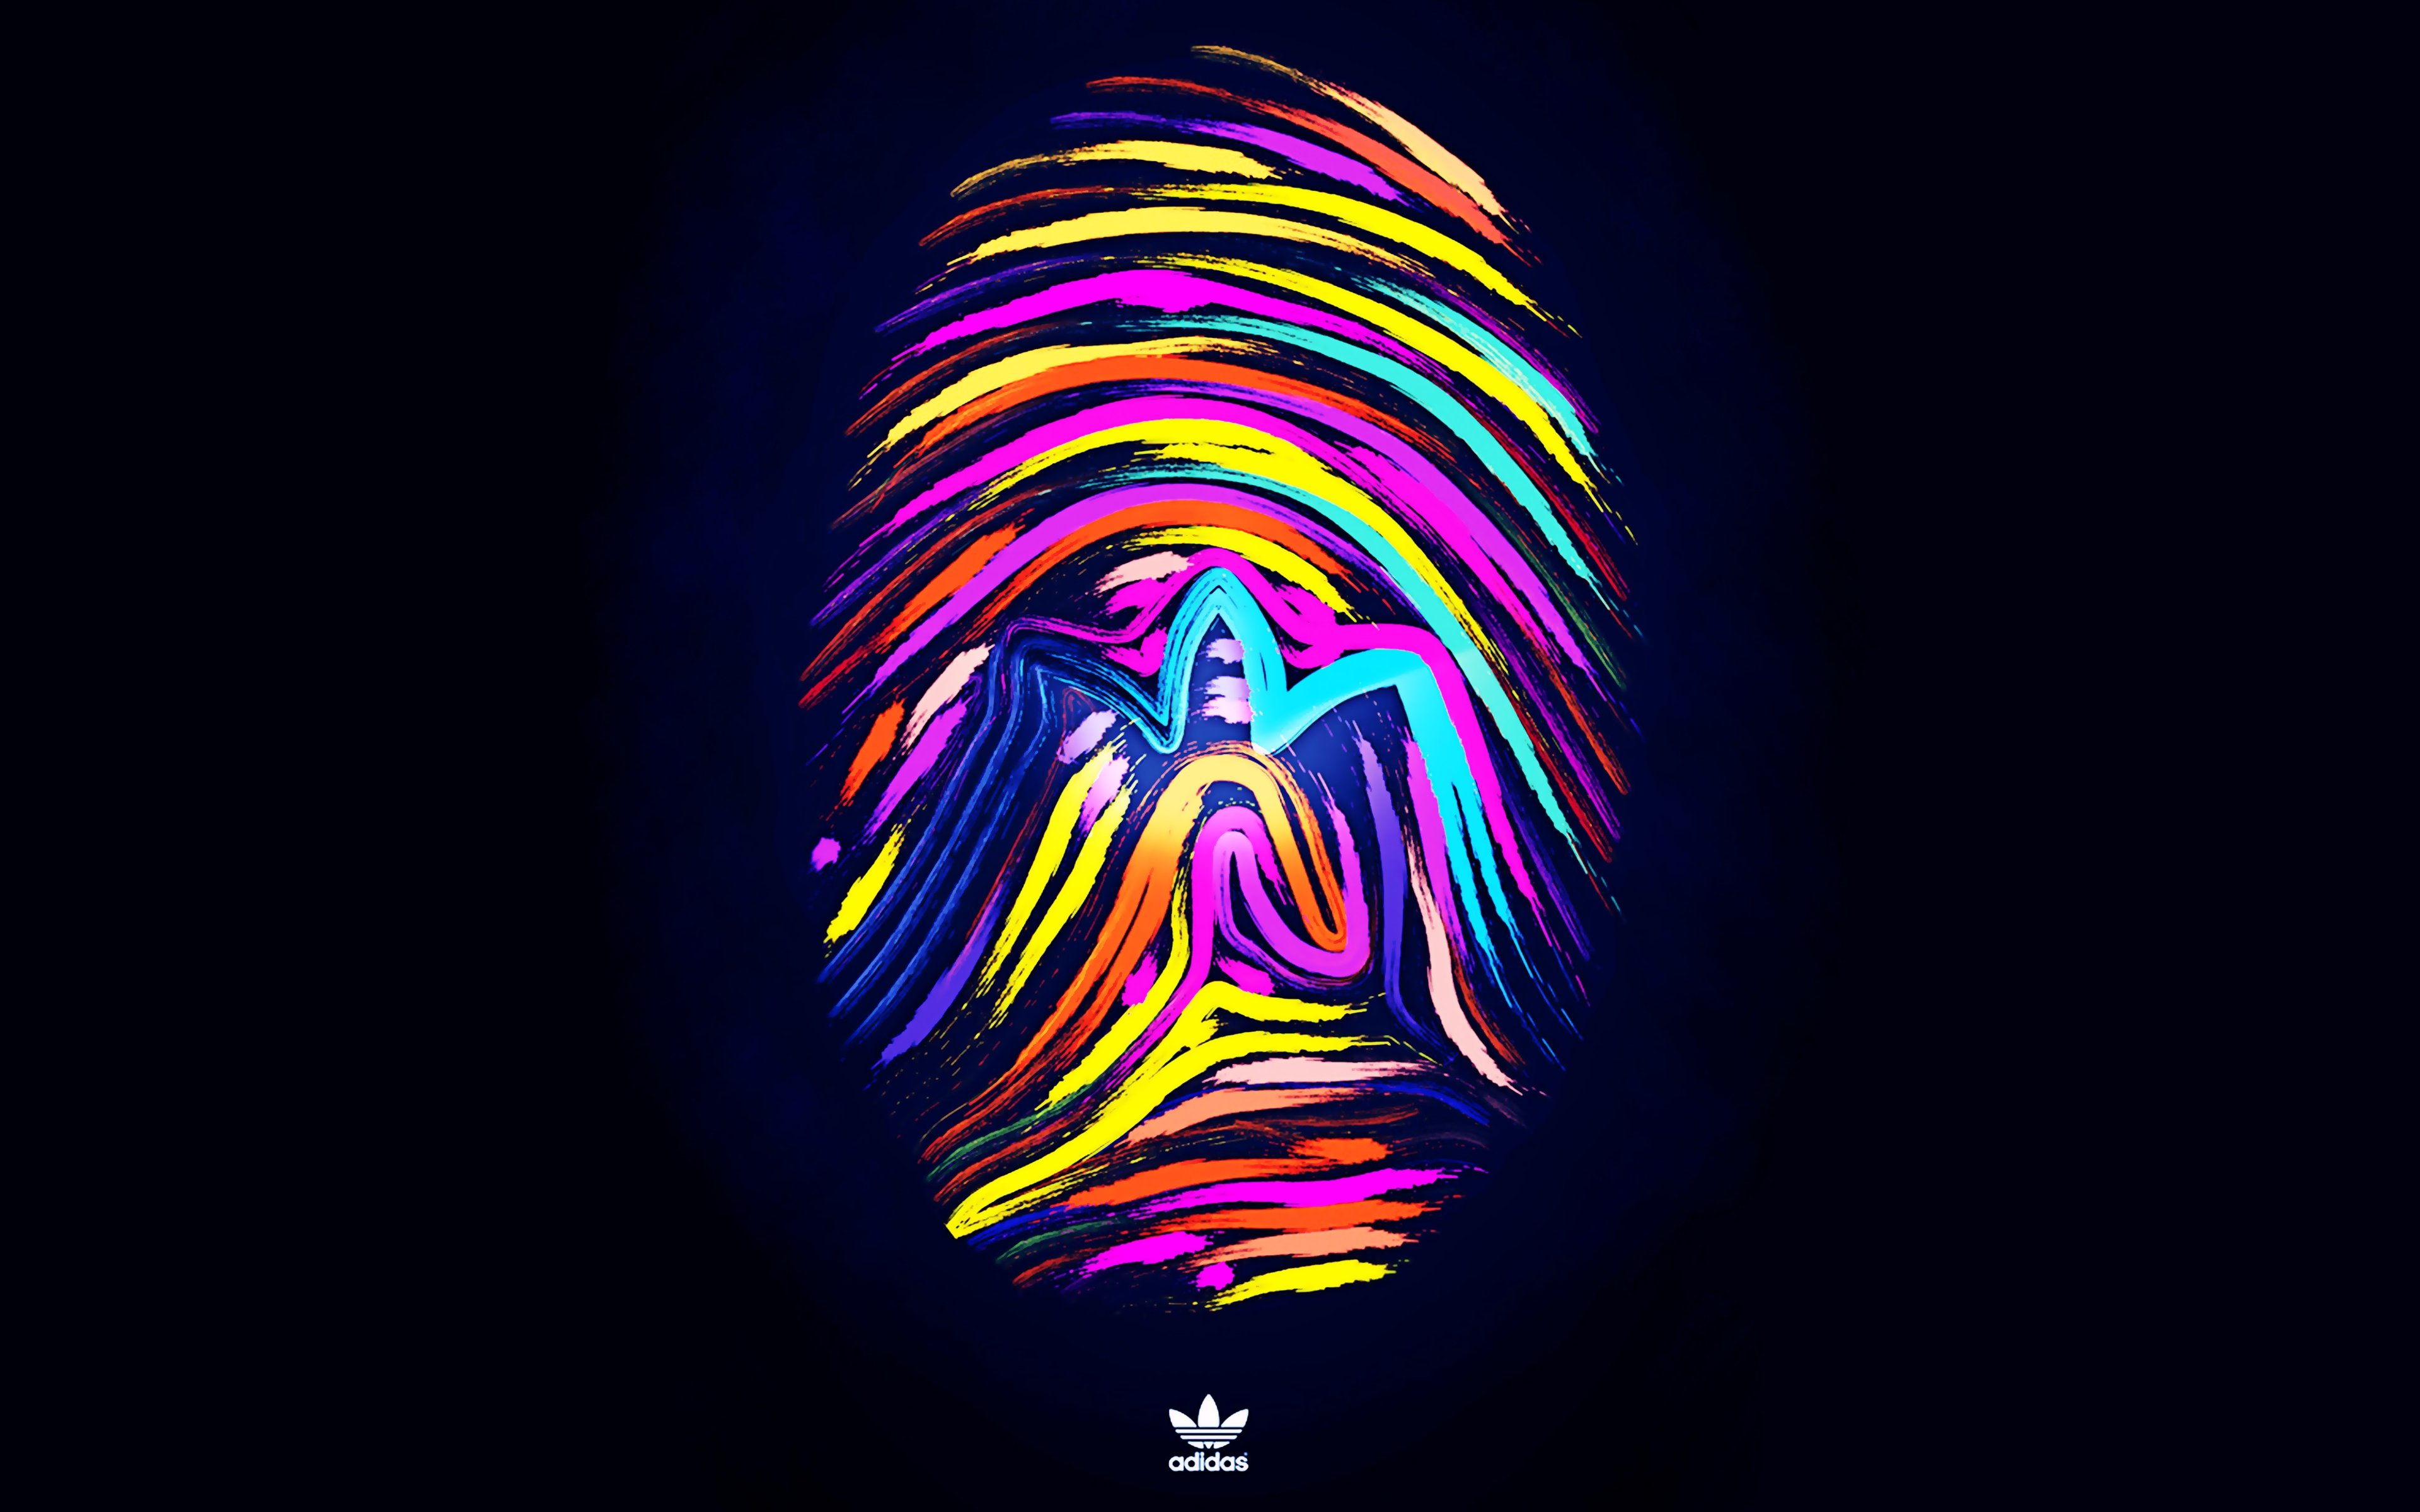 Colorful Adidas Images Is Cool Wallpapers